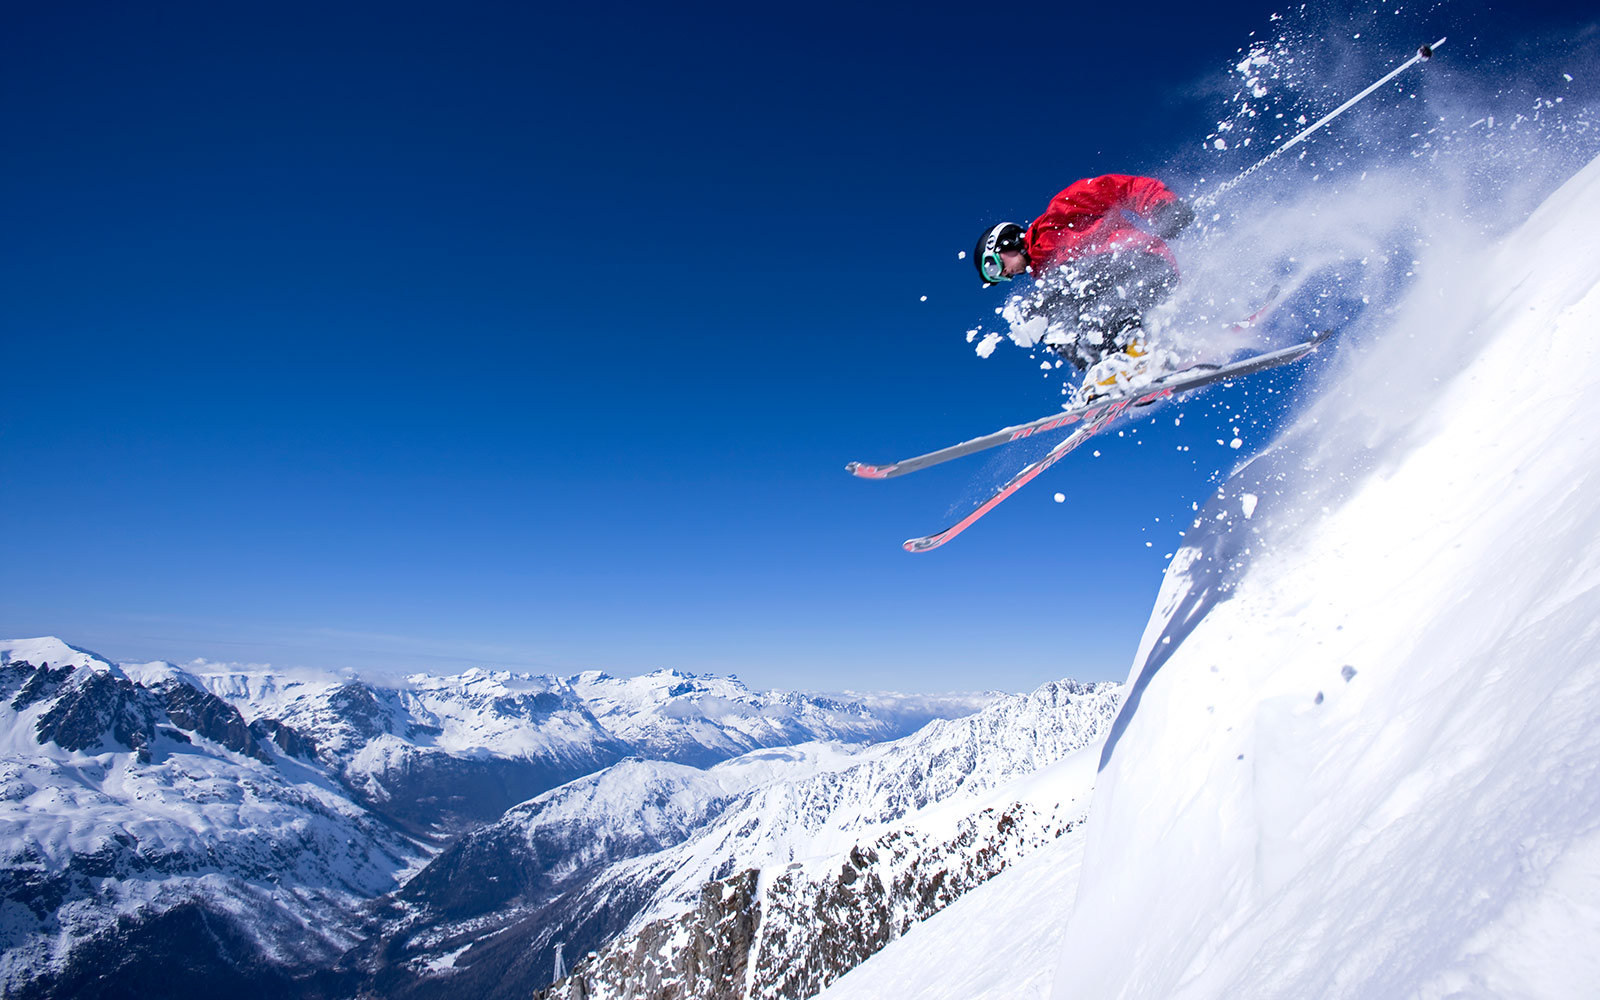 Weather Reports Suggest France Could Be Best Ski